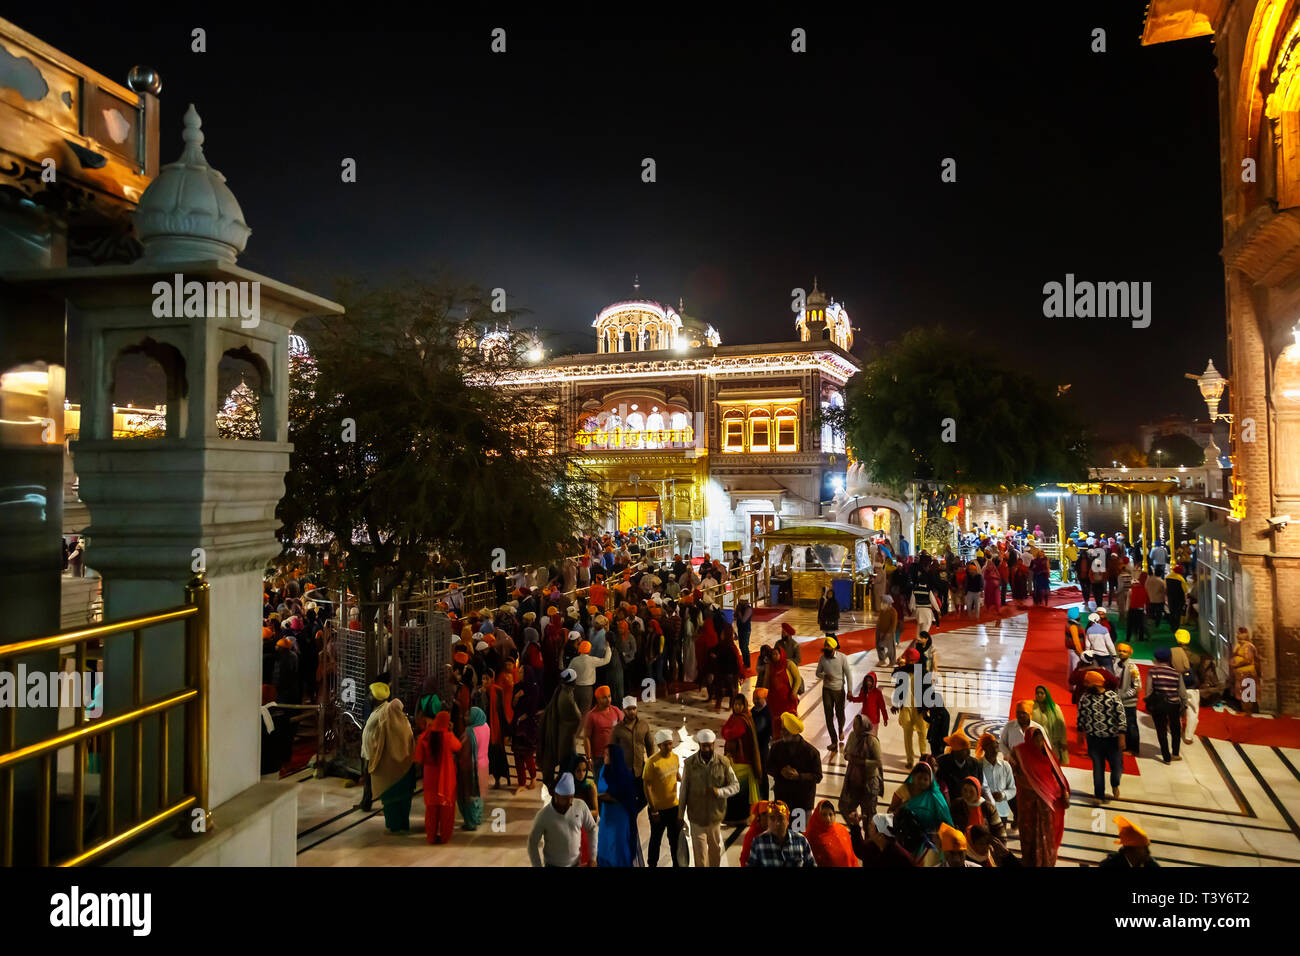 Local Sikhs queueing on the Causeway to enter the Sanctum Sanctorum of the Golden Temple of Amritsar, the holiest pilgrimage site of Sikhism, Punjab - Stock Image